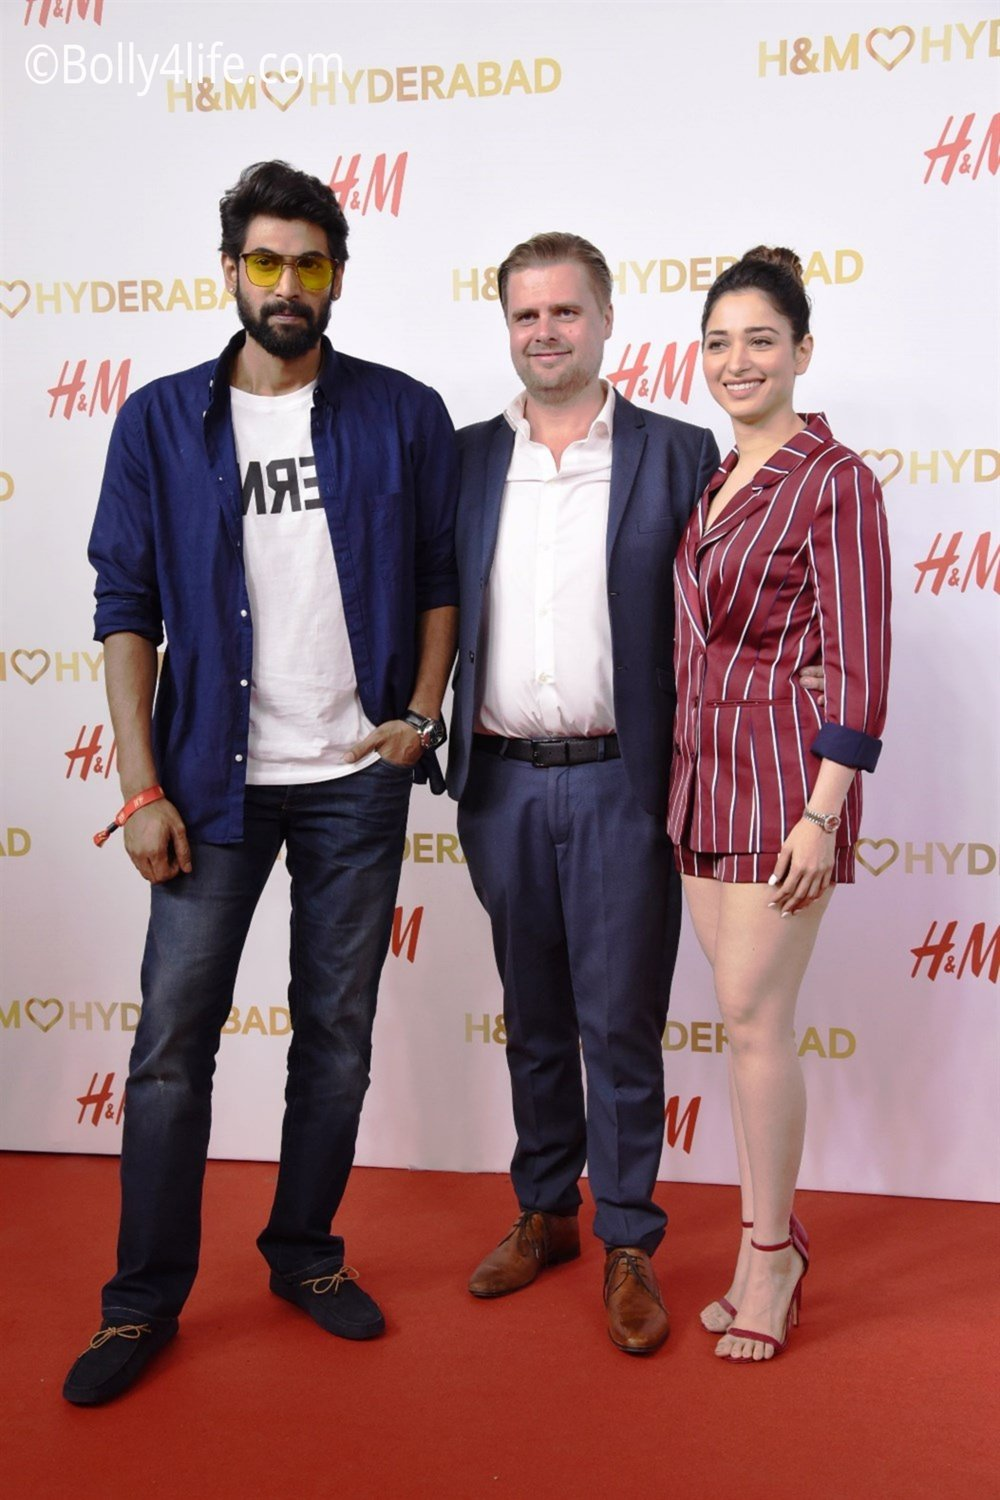 hm-hyderabad-grand-opening-at-inorbit-mall-1116af0.jpg